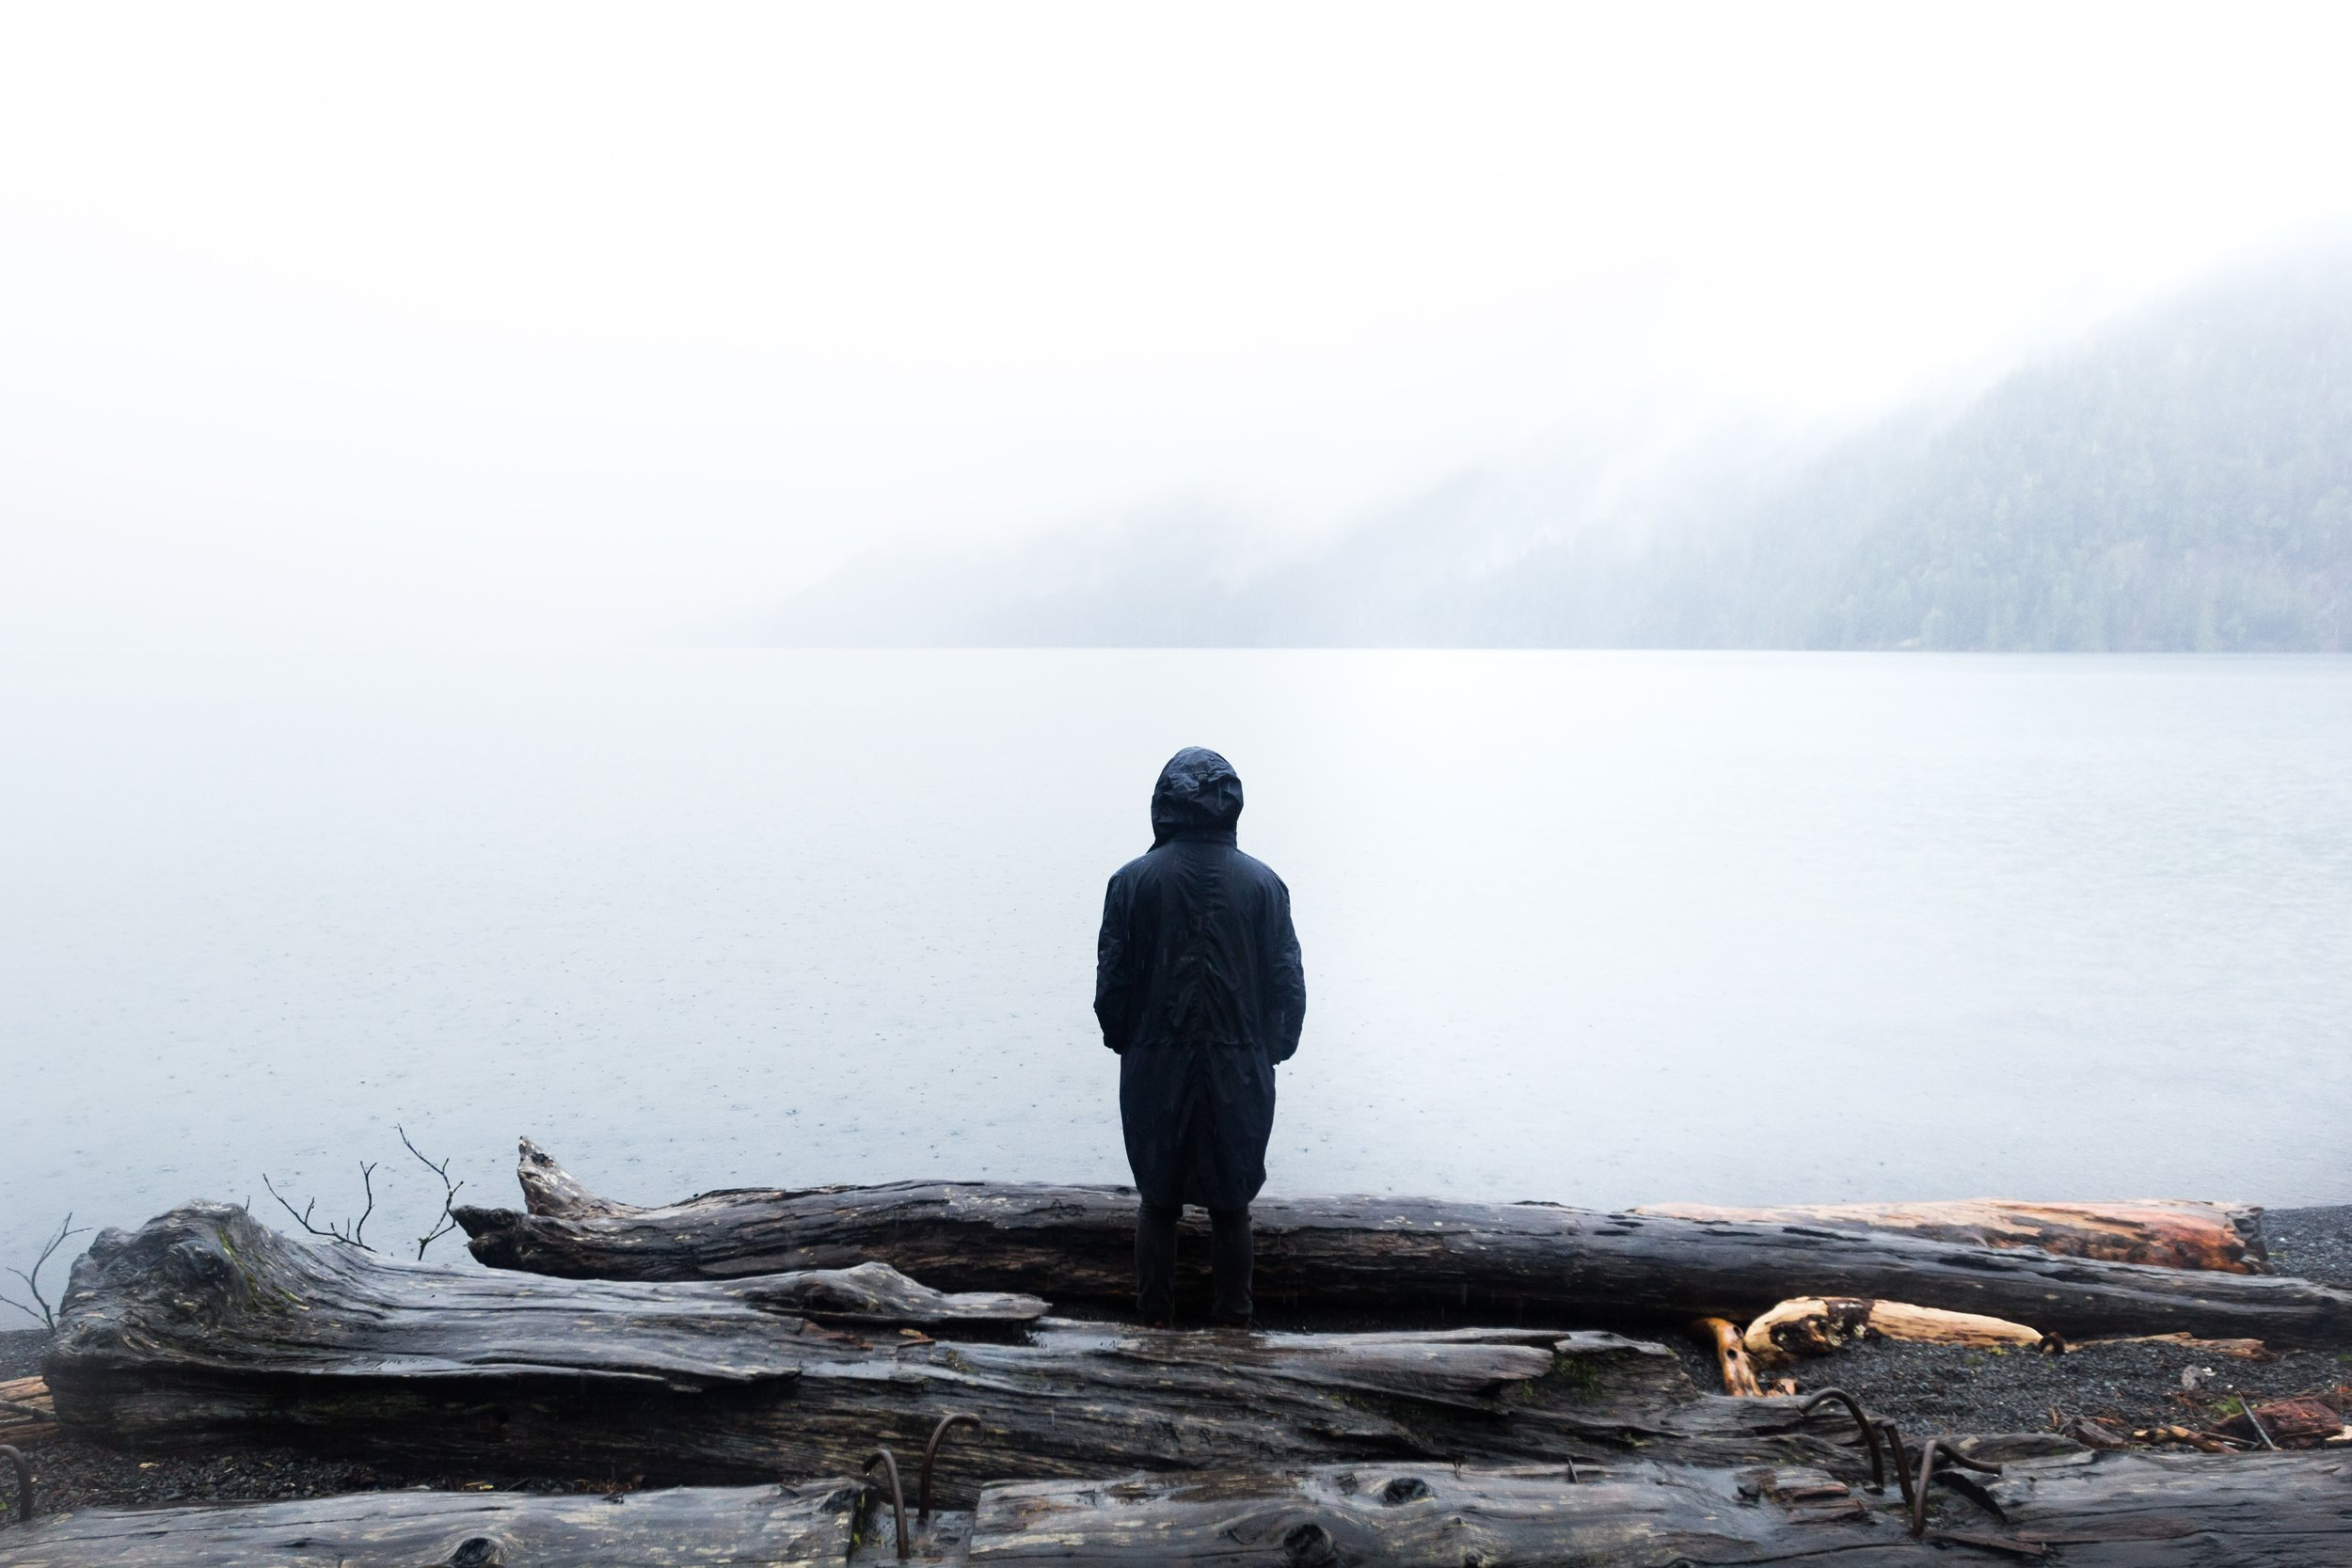 Some people describe depression as feeling alone, even though they are surrounded by people. Others describe it as the inability to envision a hopeful future - like looking forward through a gloomy fog.  Counseling can help.